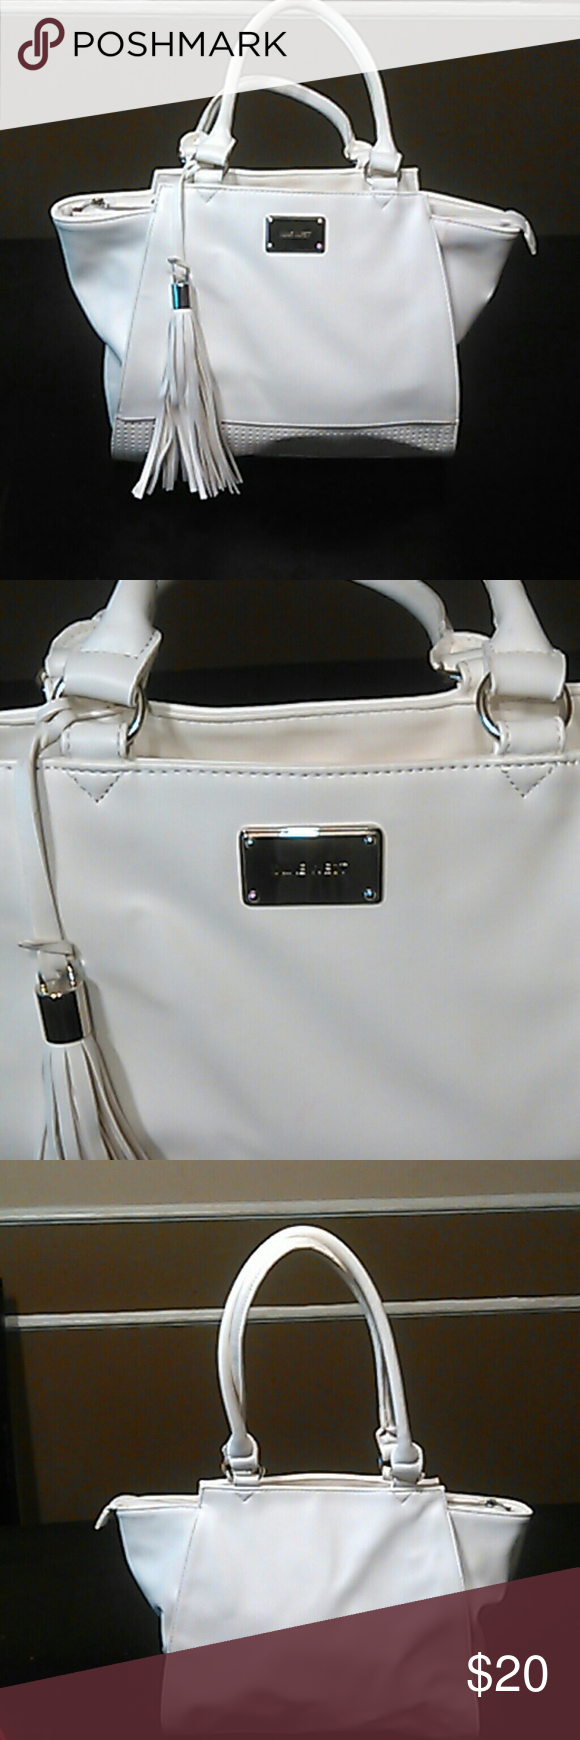 Nine west large white tote Used good condition small faint pink  spot on front as well as small Brown spot as shown in pic Nine West Bags Totes